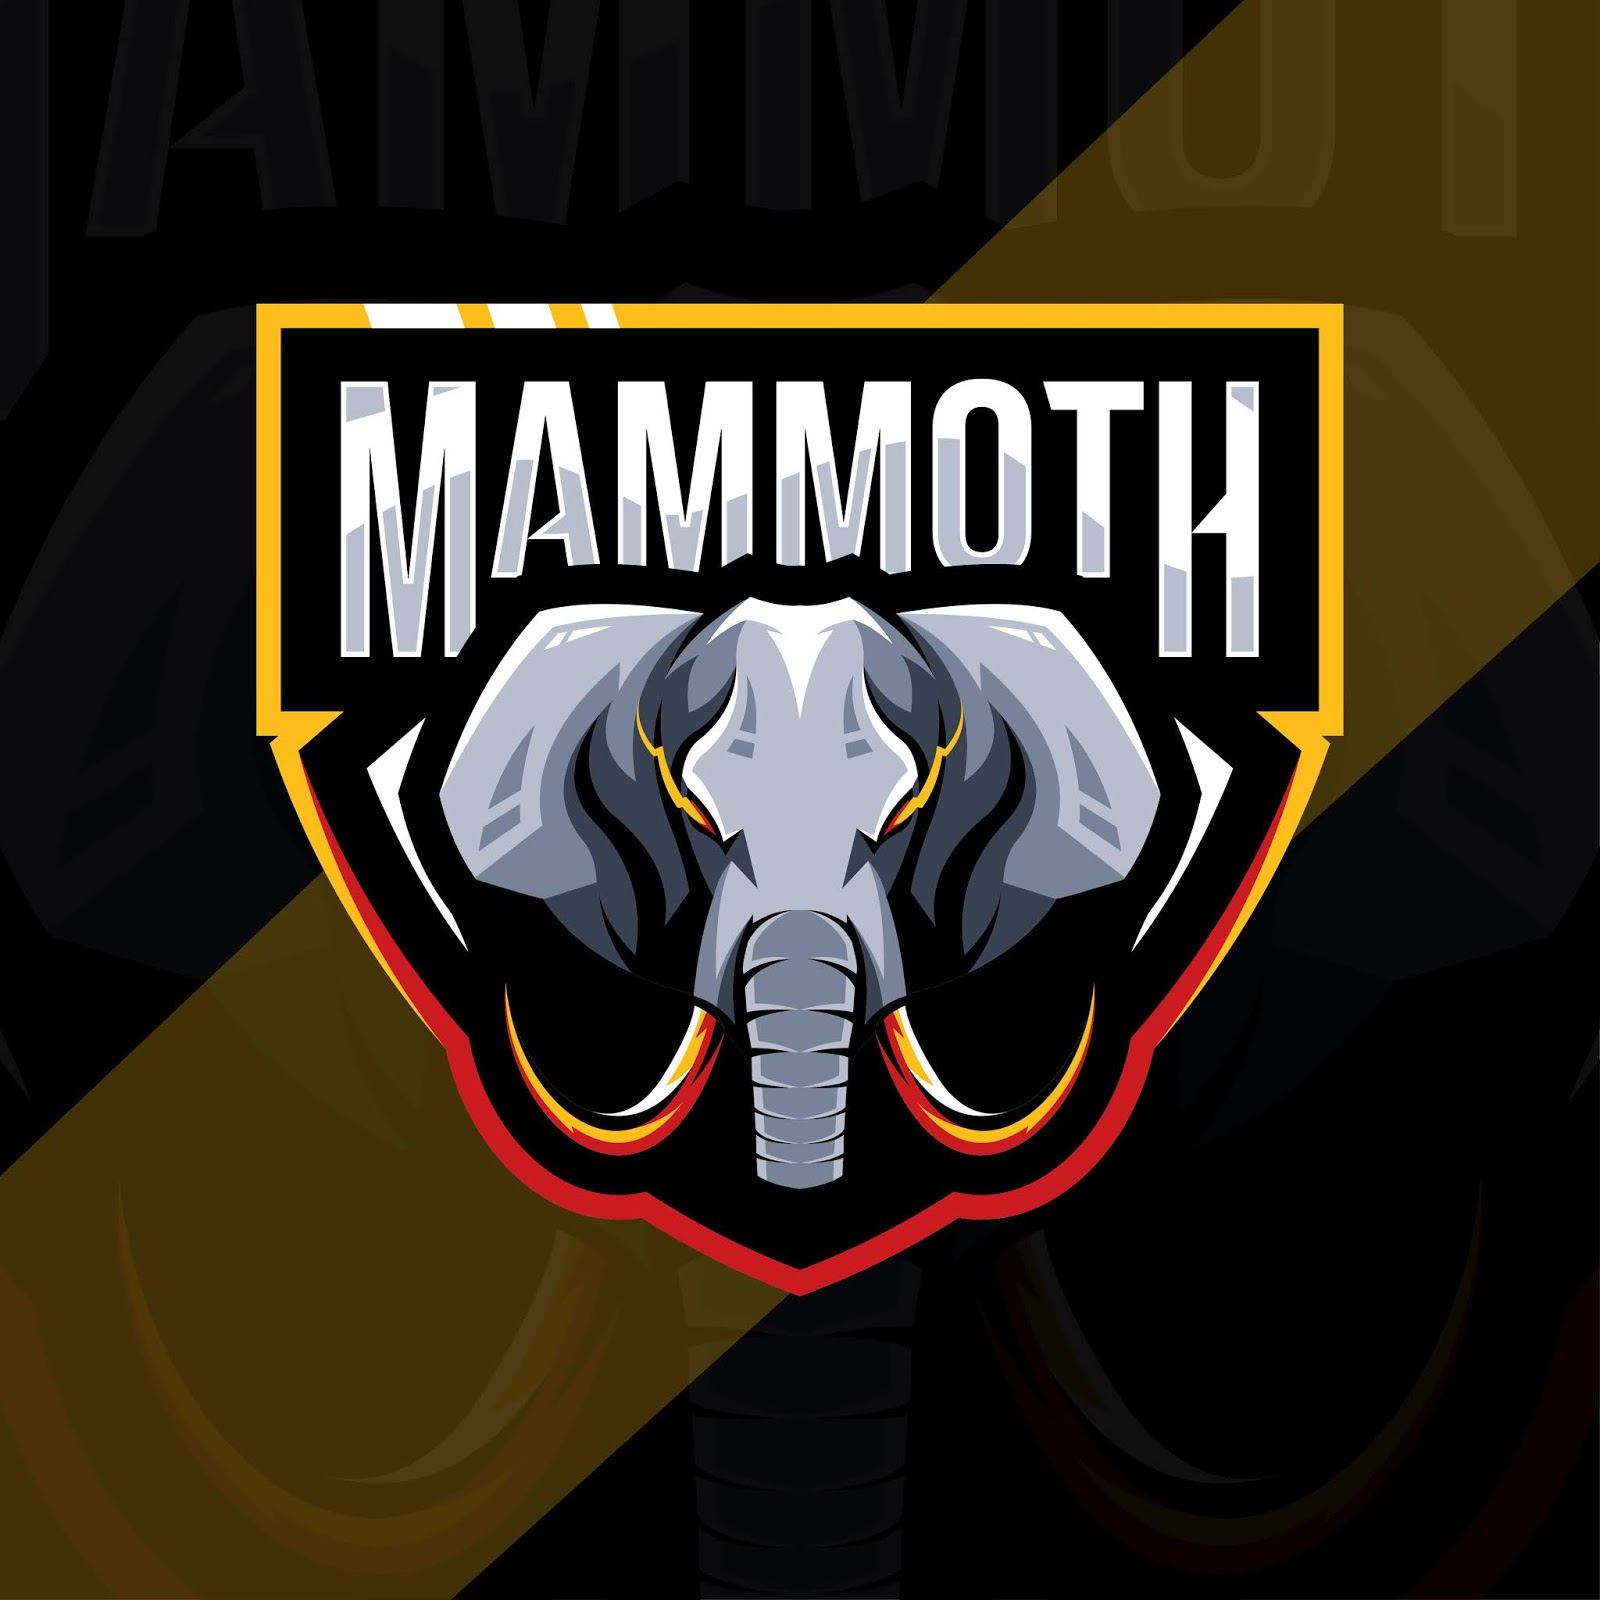 Mammoth Mascot Logo Esport Design Free Download Vector CDR, AI, EPS and PNG Formats